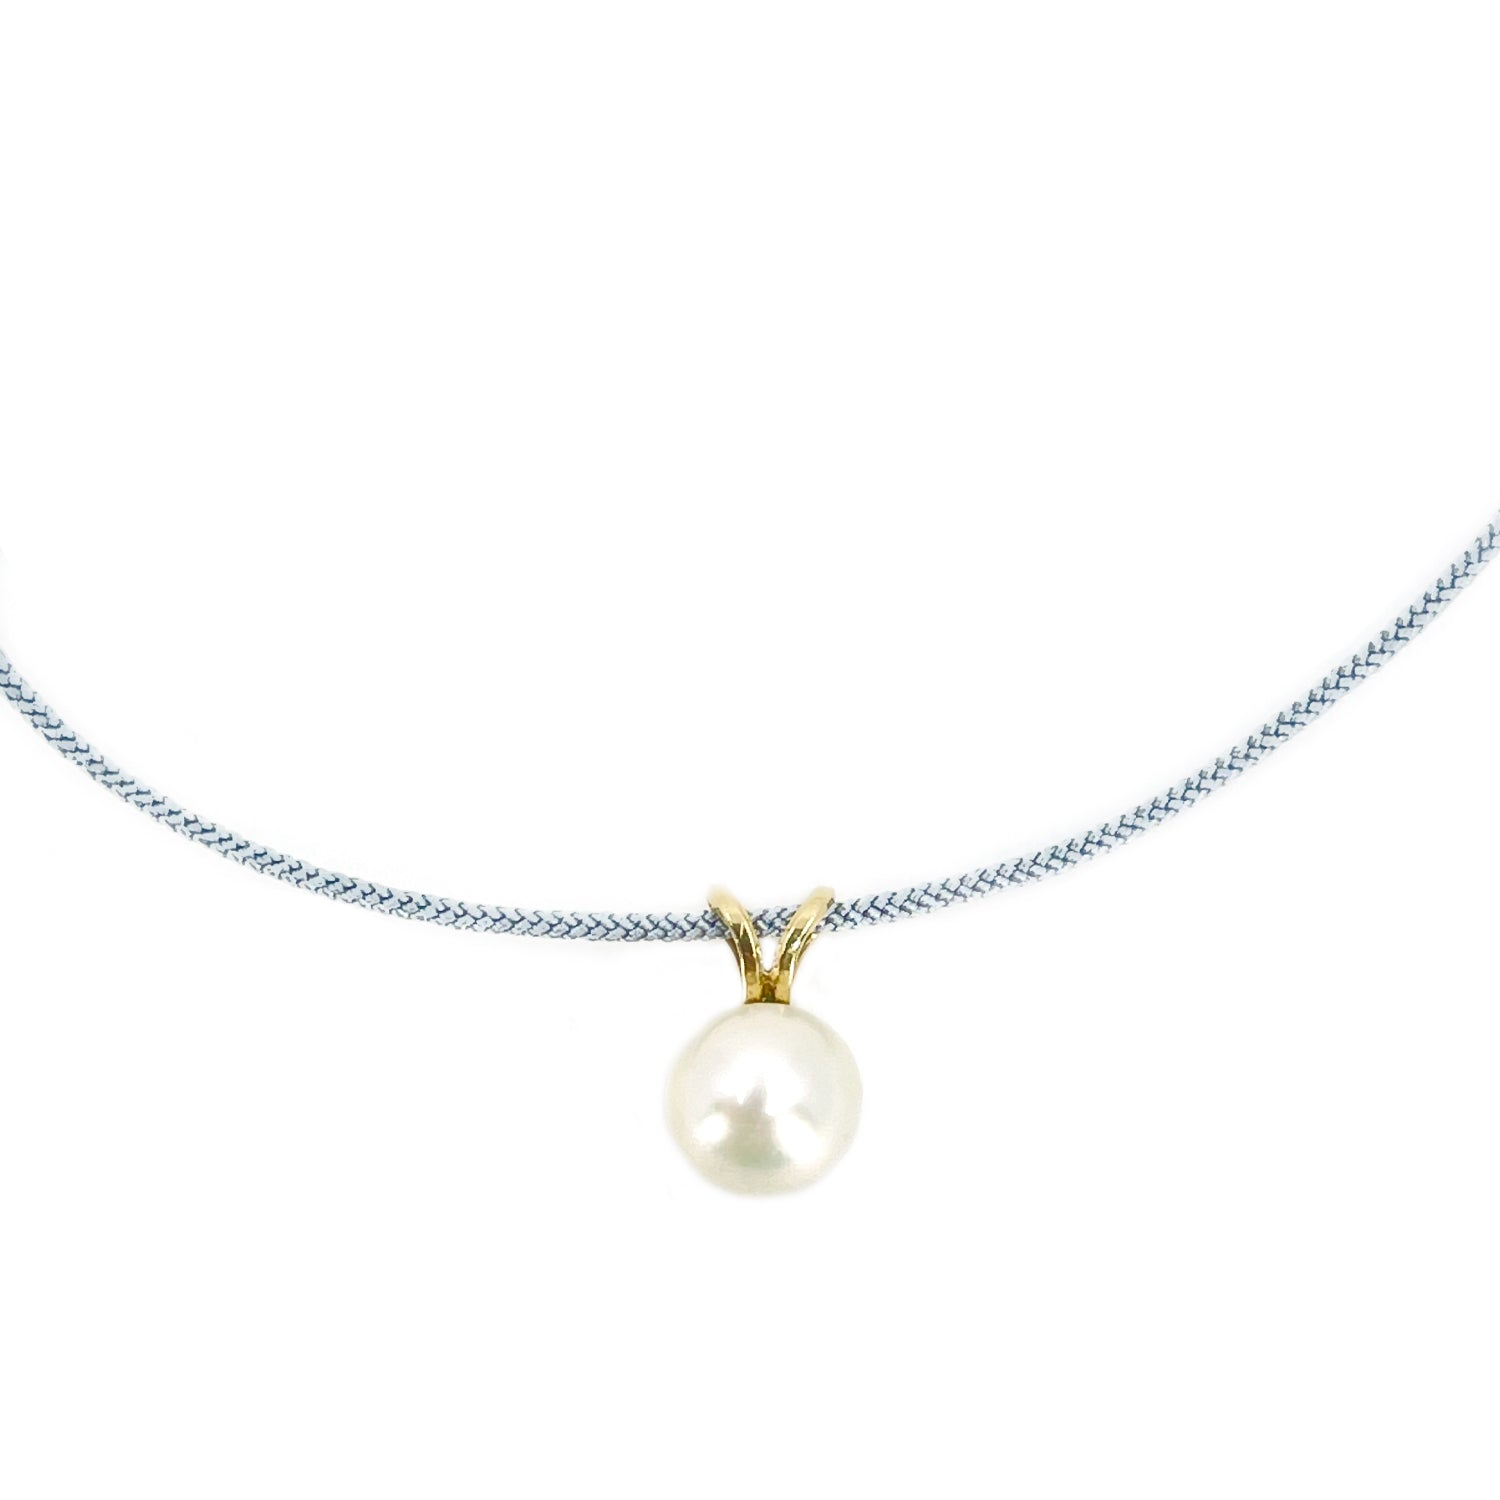 Kumihimo Braided Light Blue Silk Vintage Akoya Saltwater Cultured Pearl Adjustable Necklace-14K Yellow Gold